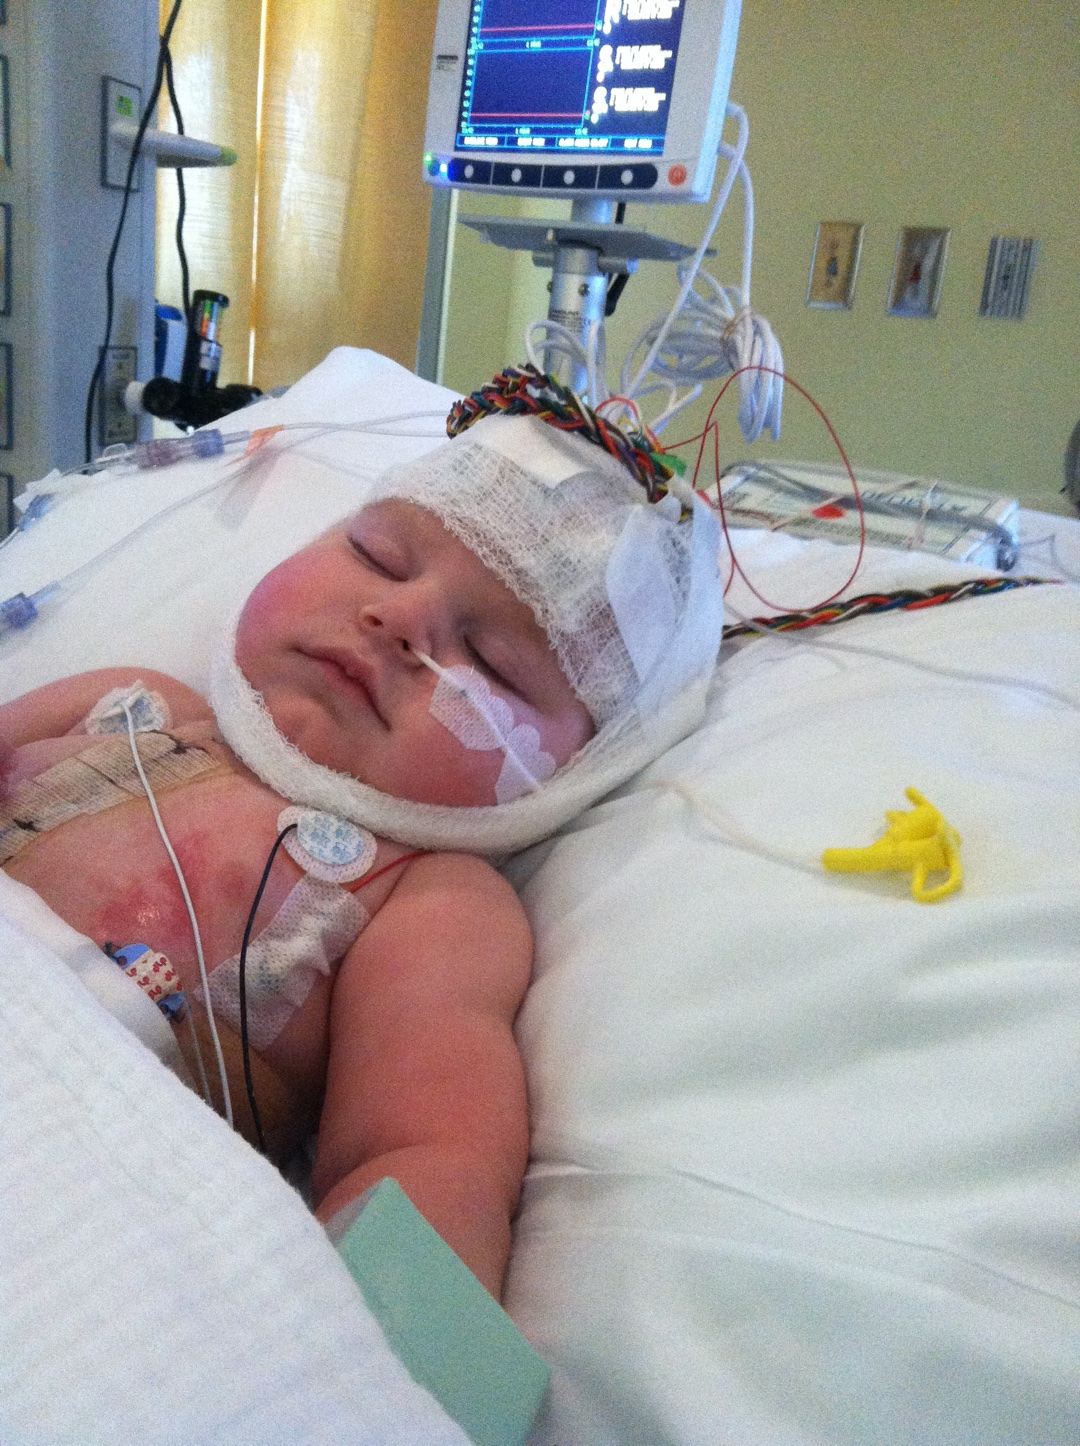 Silas in Bed After heart transplant Procedure